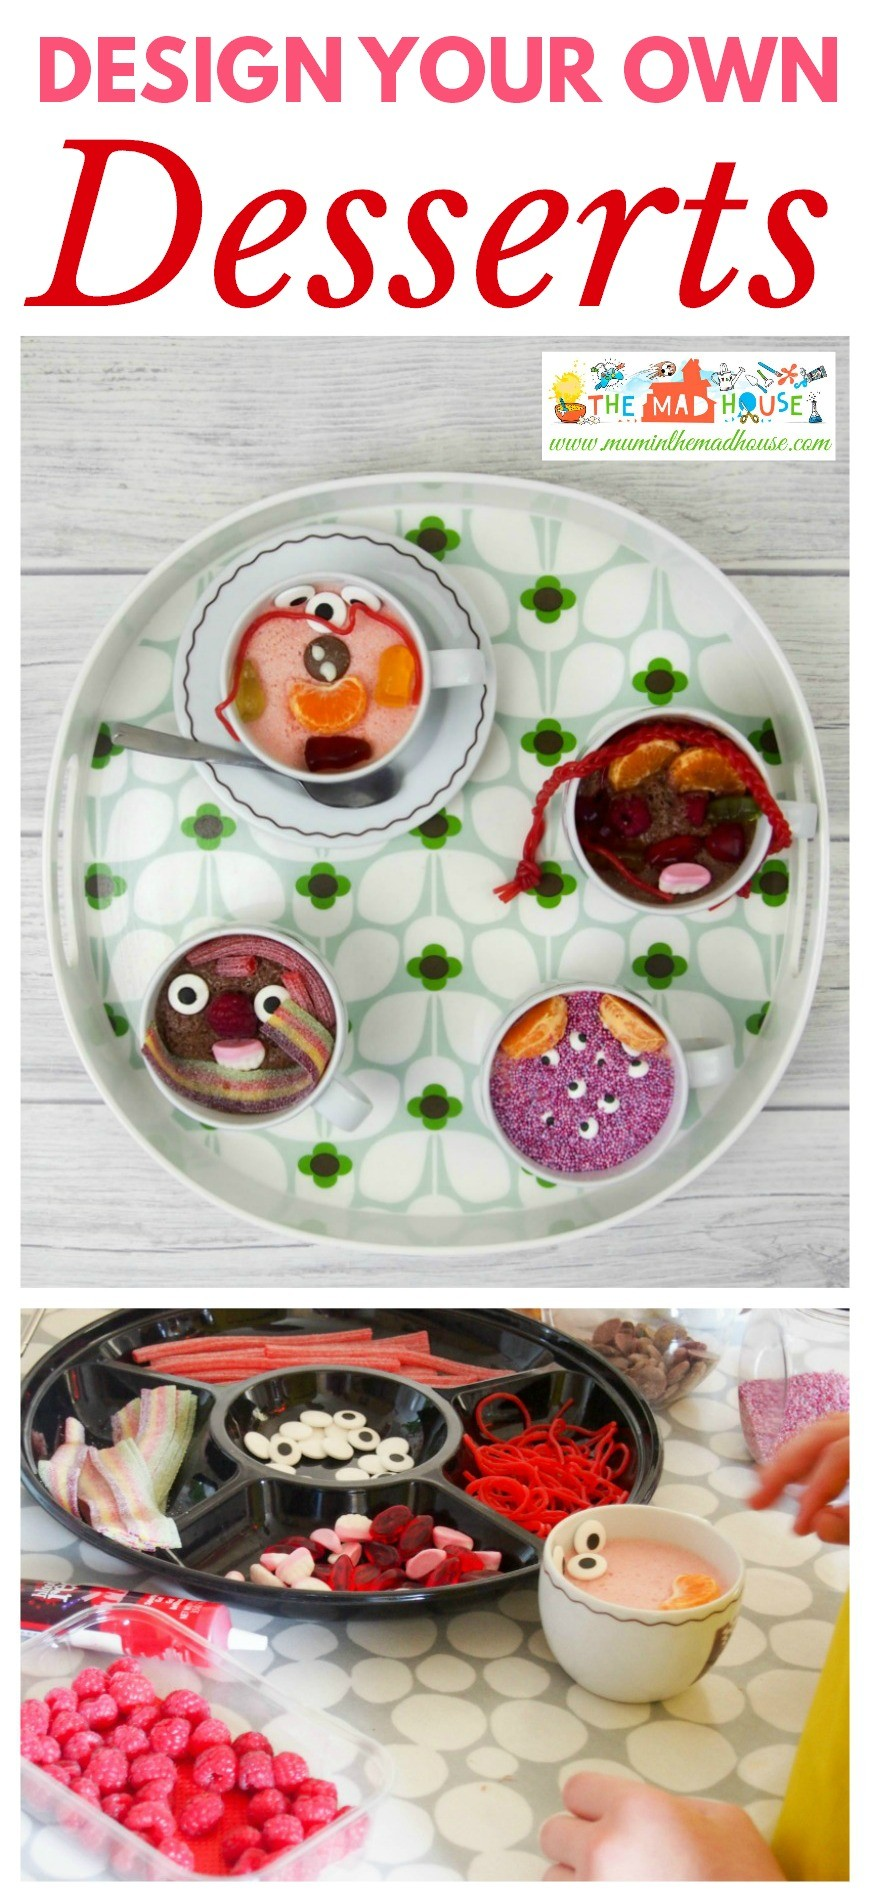 This kids dessert buffet is an excellent way to encourage your kids to eat new foods and perfect for a party. I love getting kids in the kitchen and having fun with foods.